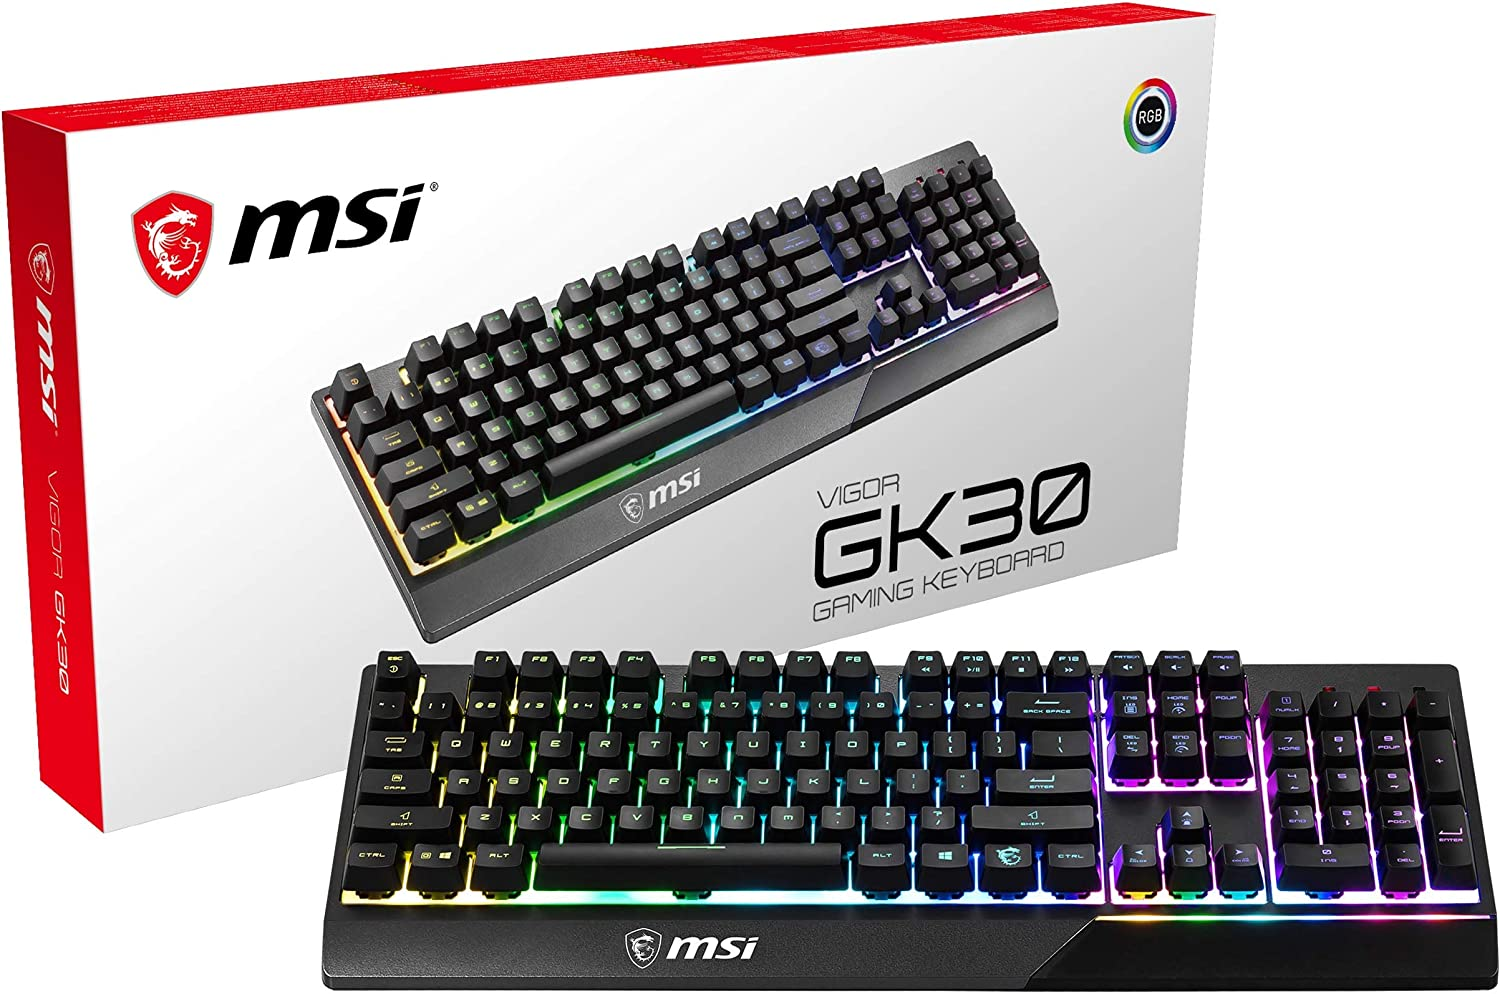 MSI Gaming Backlit RGB Dedicated Hotkeys Anti-Ghosting Water Resistant Mechanical Feel Gaming Keyboard (Vigor GK30 US)